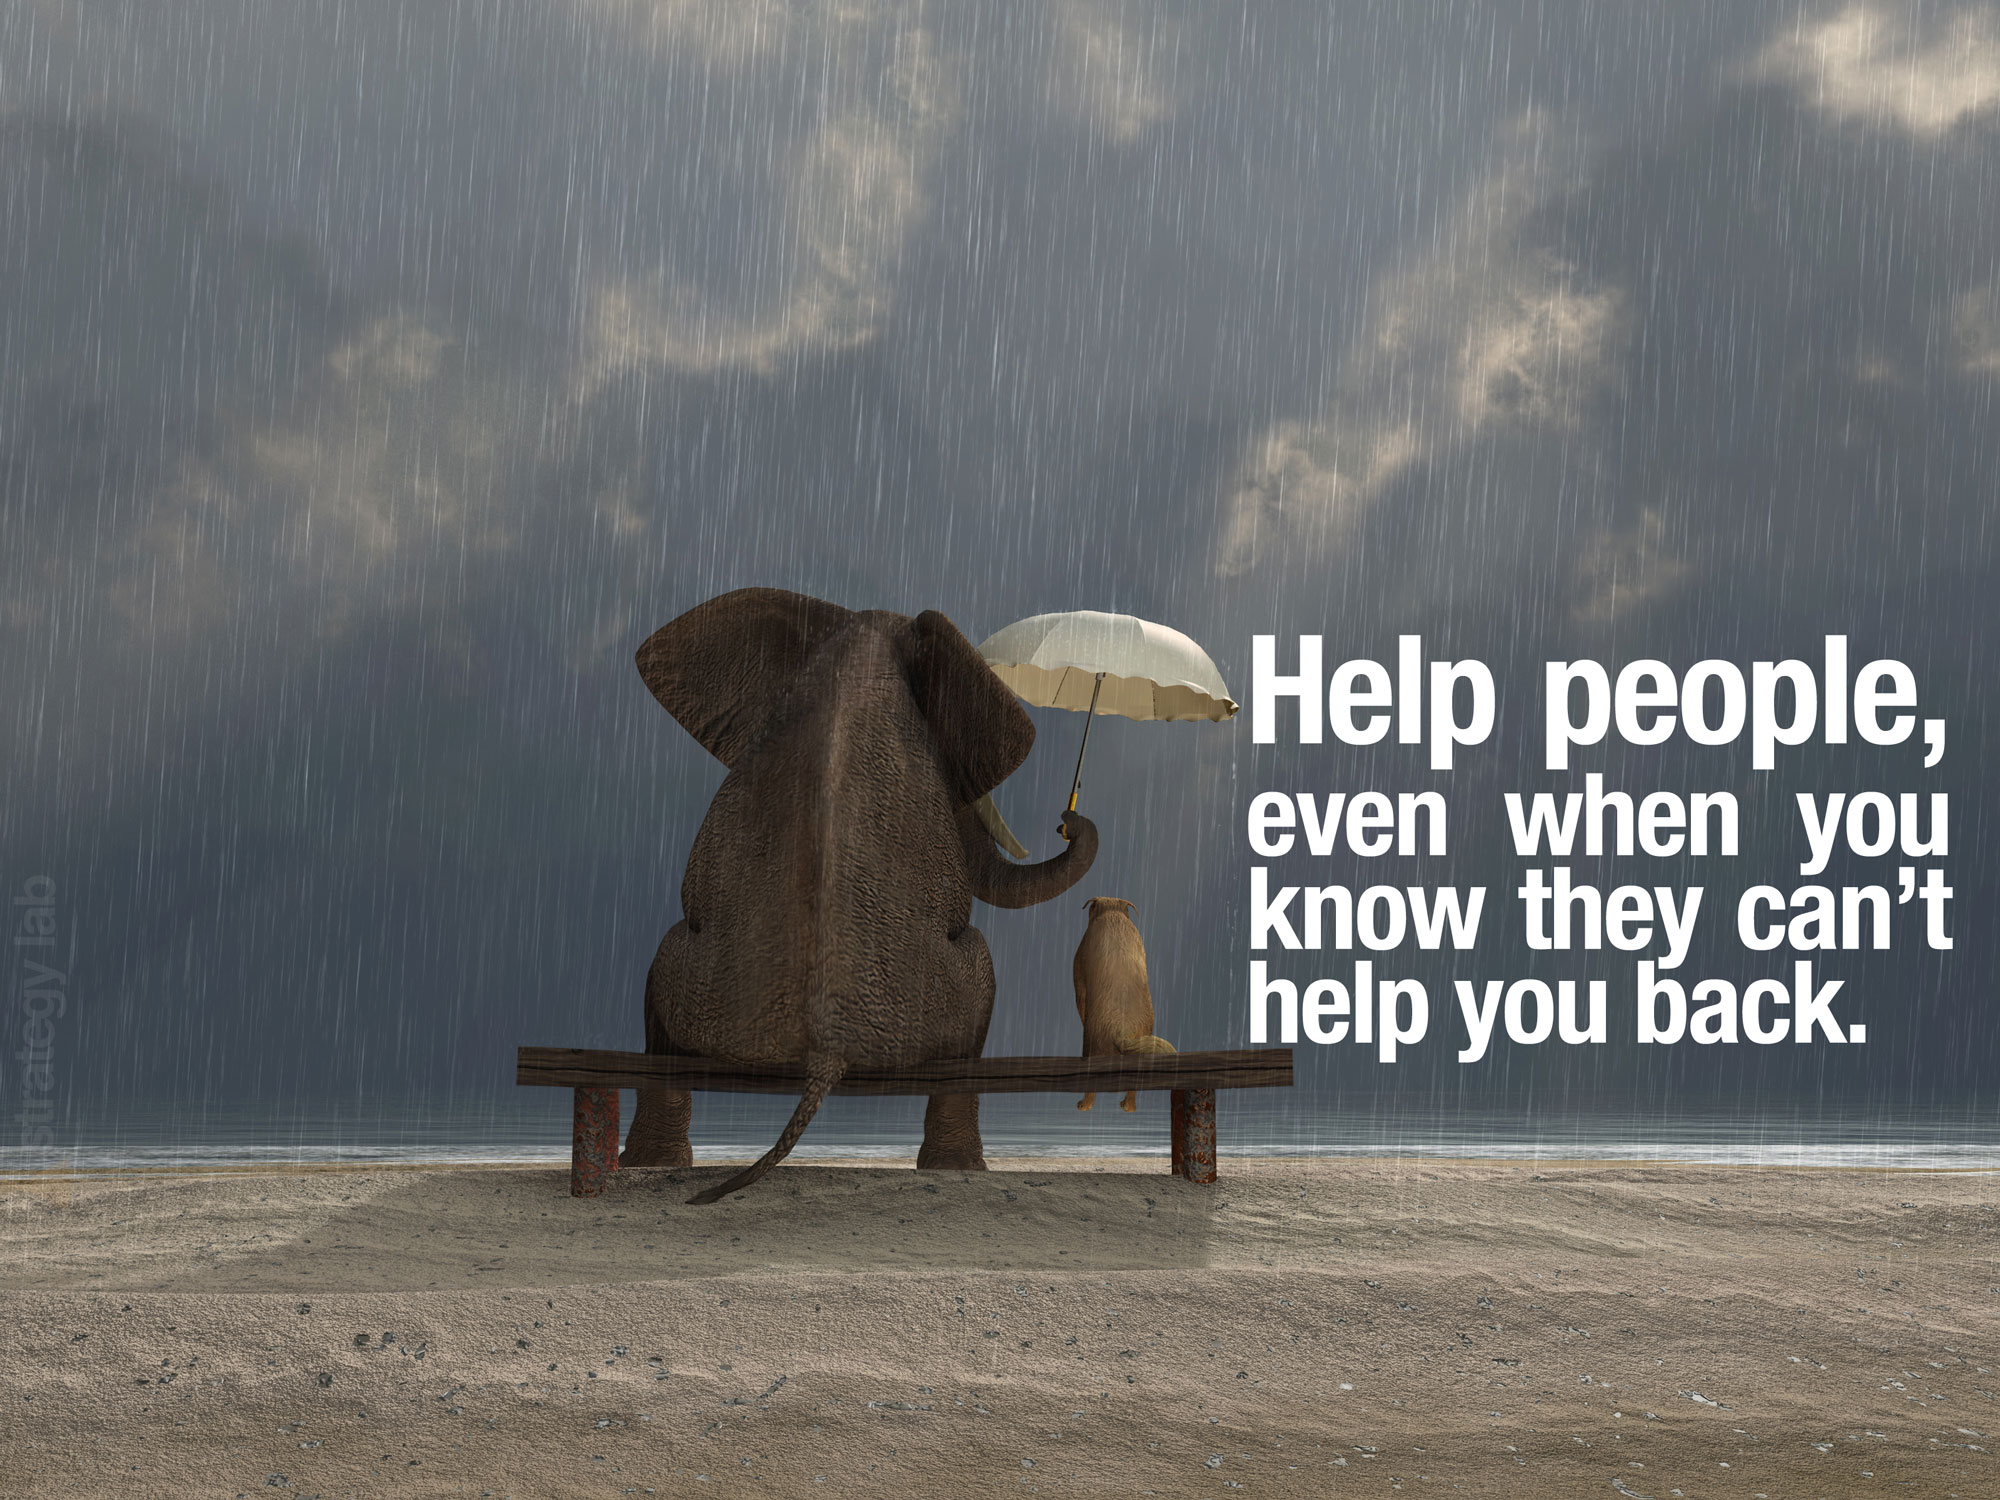 Help people even when they cant help you back